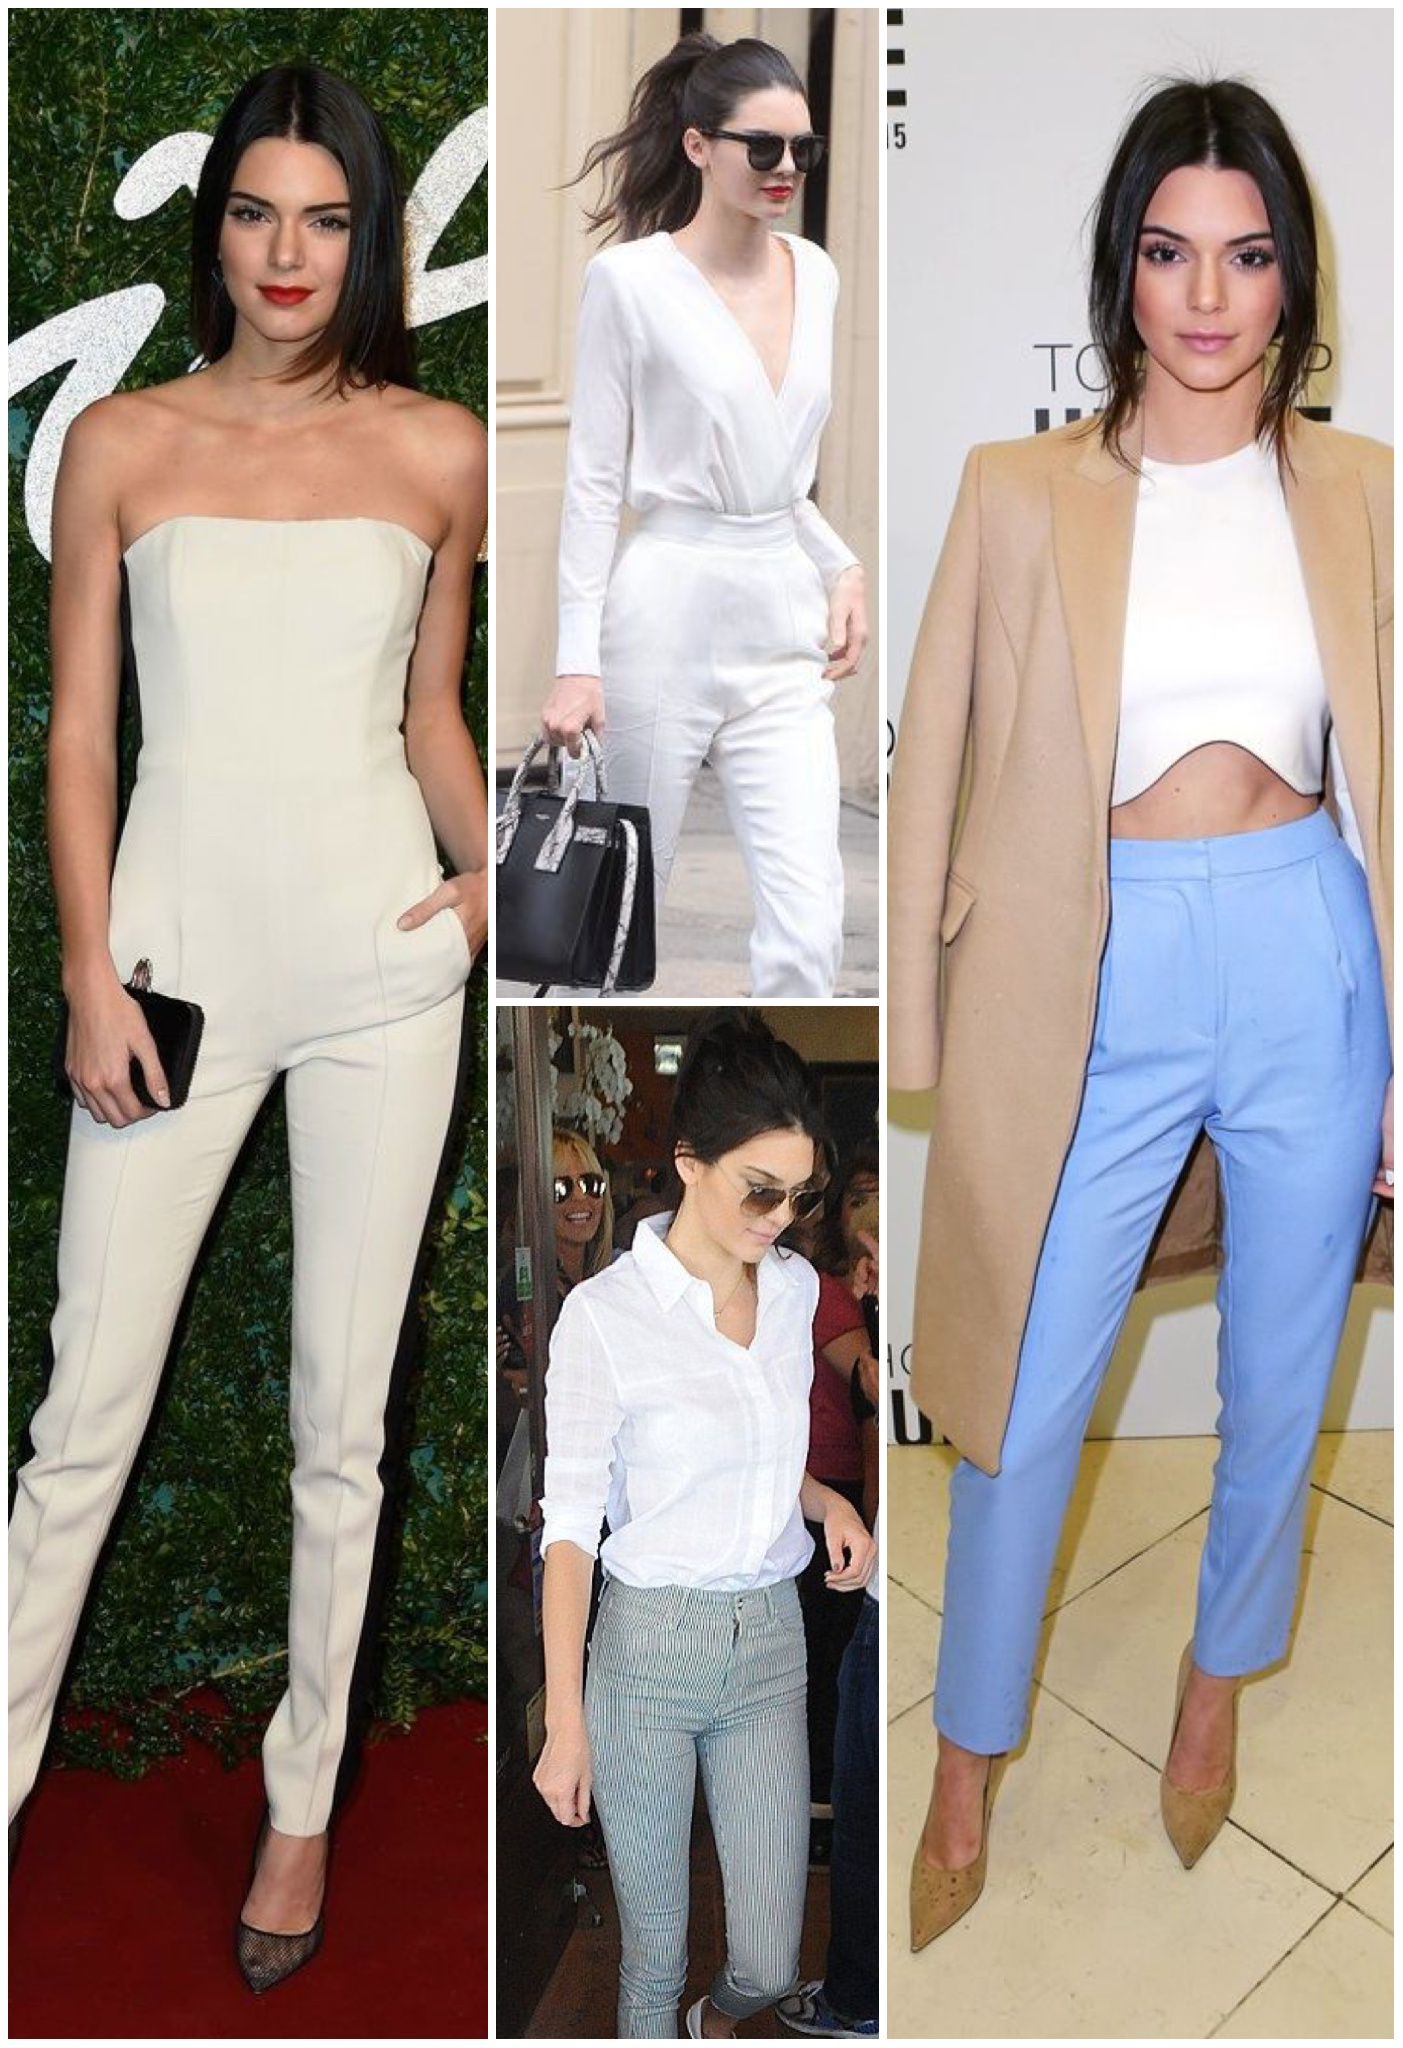 Chic with pants - Kendall Jenner